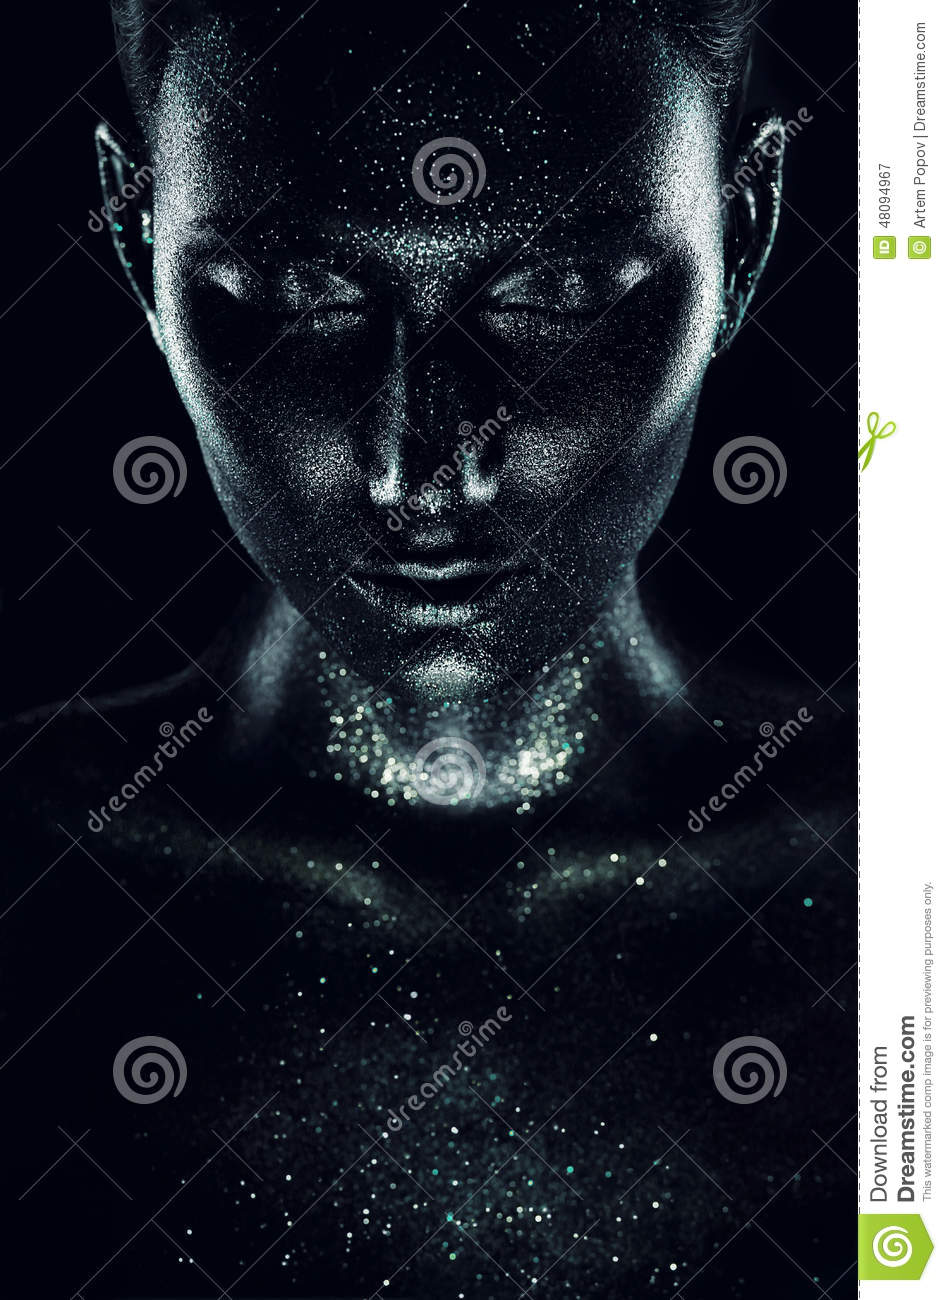 Woman in black paint with sparkles in dark